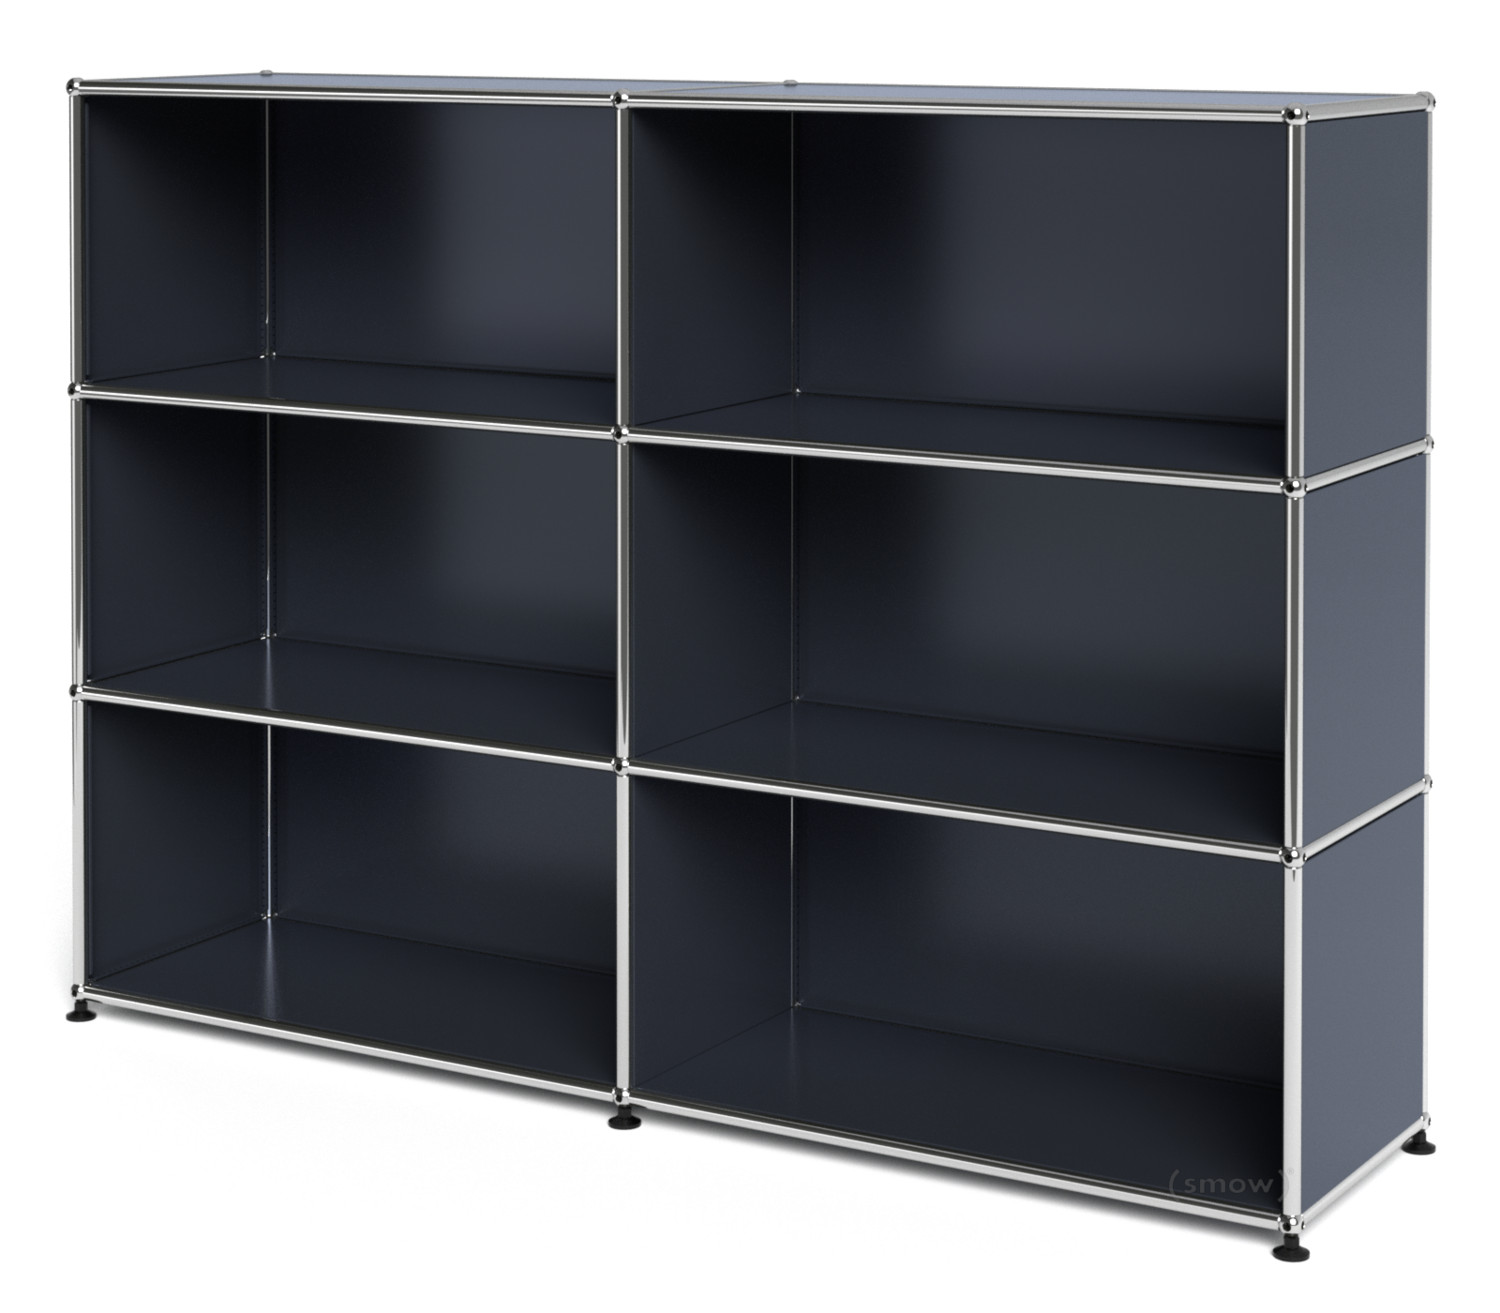 usm haller highboard l offen anthrazitgrau ral 7016 von. Black Bedroom Furniture Sets. Home Design Ideas